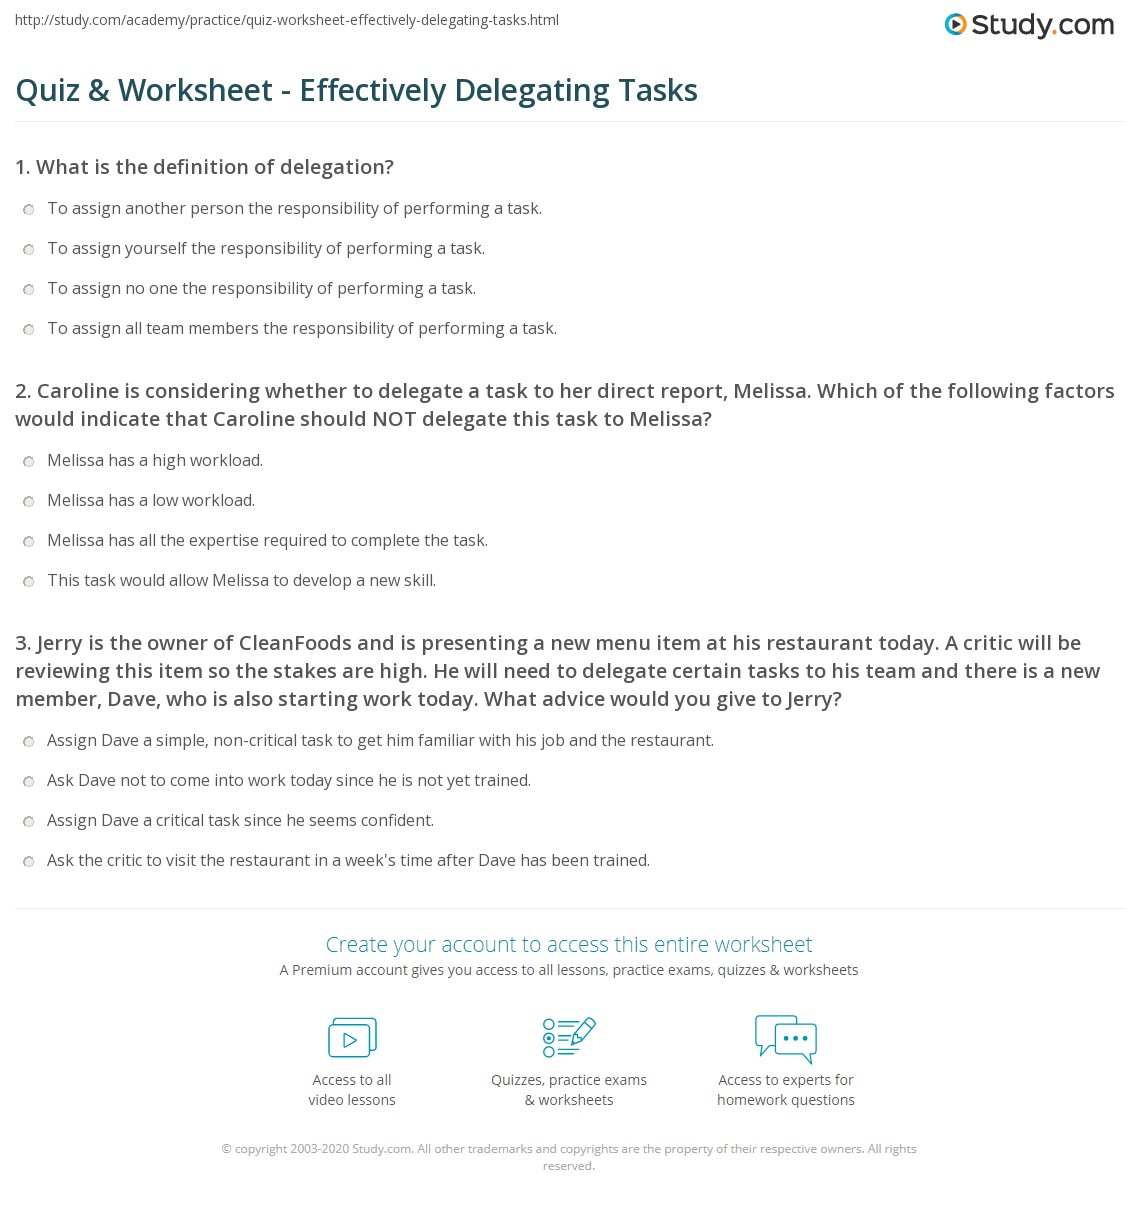 Quiz Worksheet Effectively Delegating Tasks Study Com